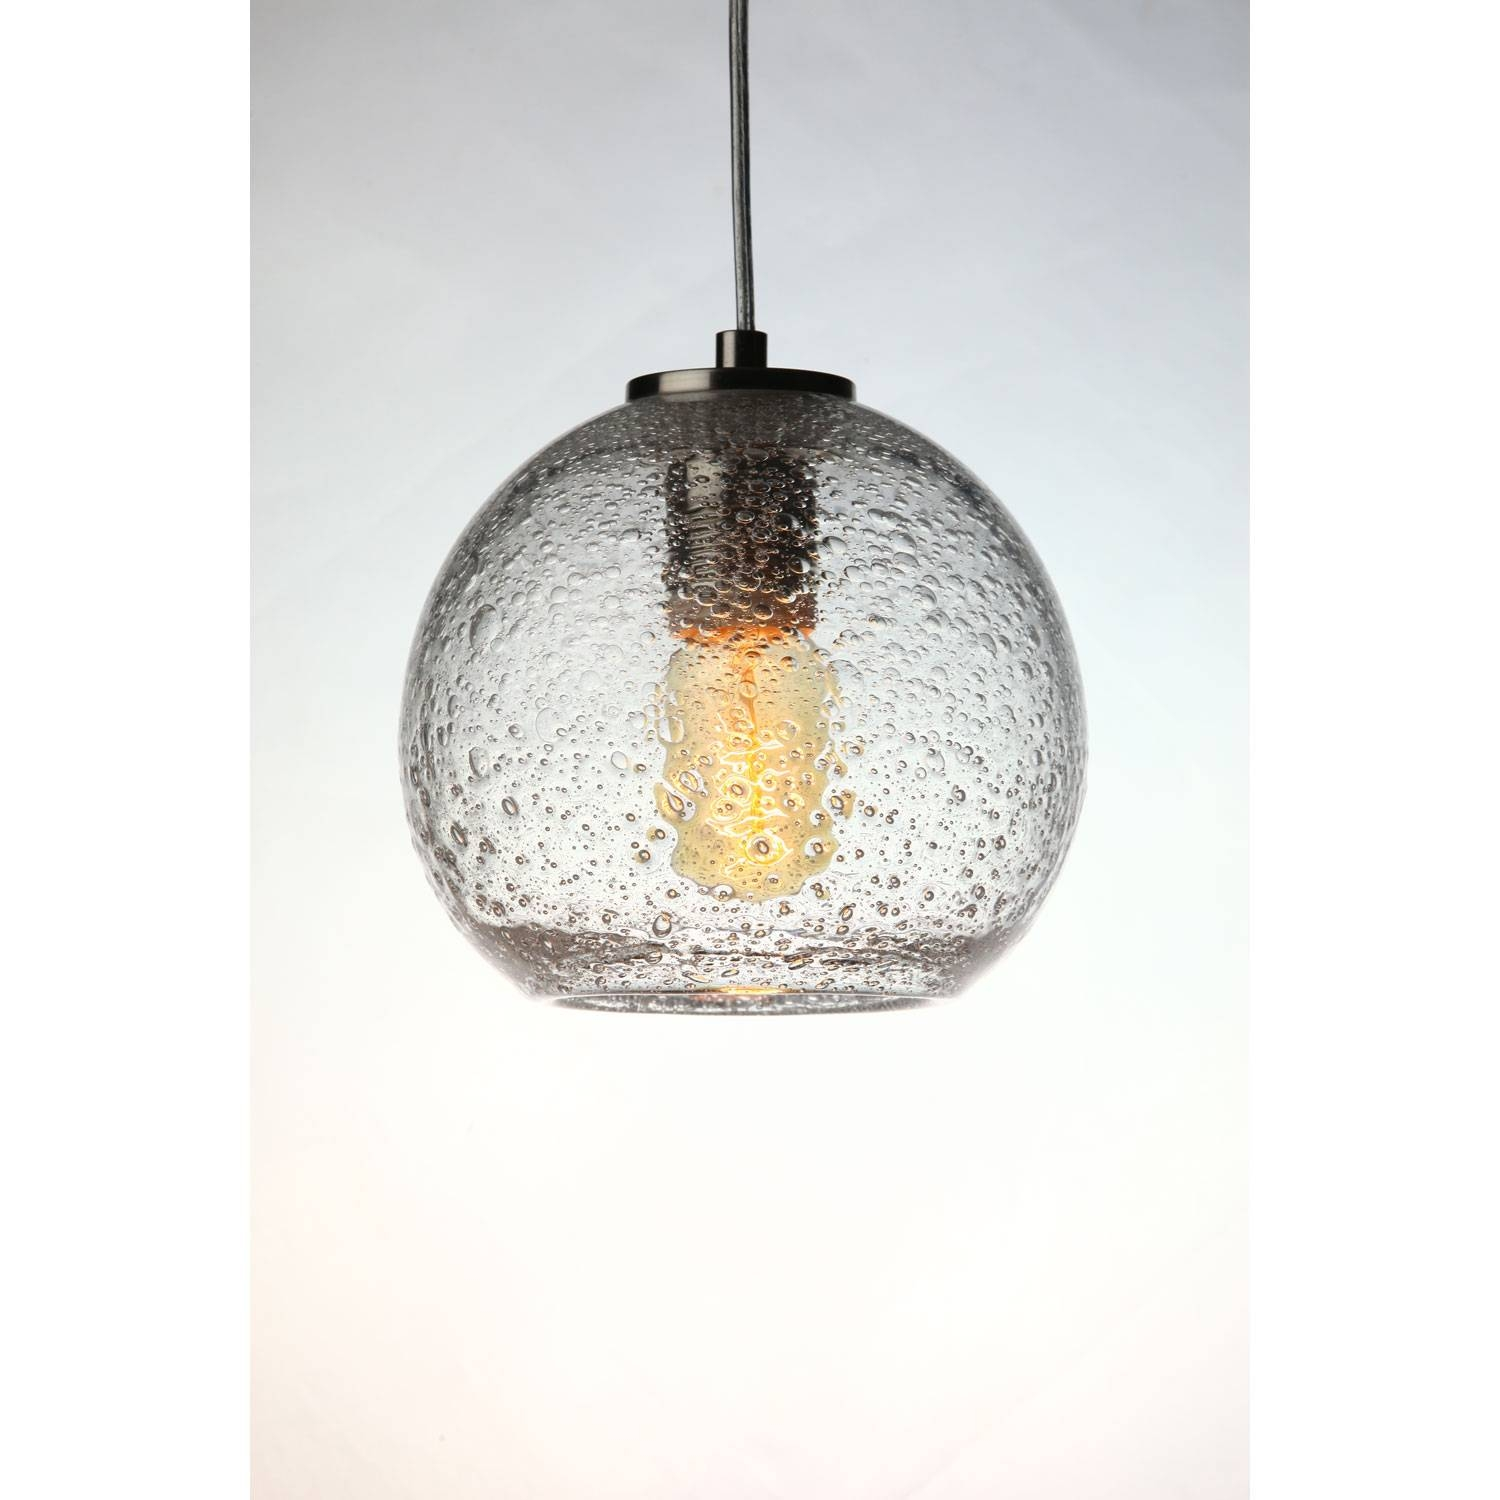 Exquisite Bubble Glass Pendant Light Dining Room | The Gather with regard to Clear Globe Pendant Lights (Image 3 of 15)